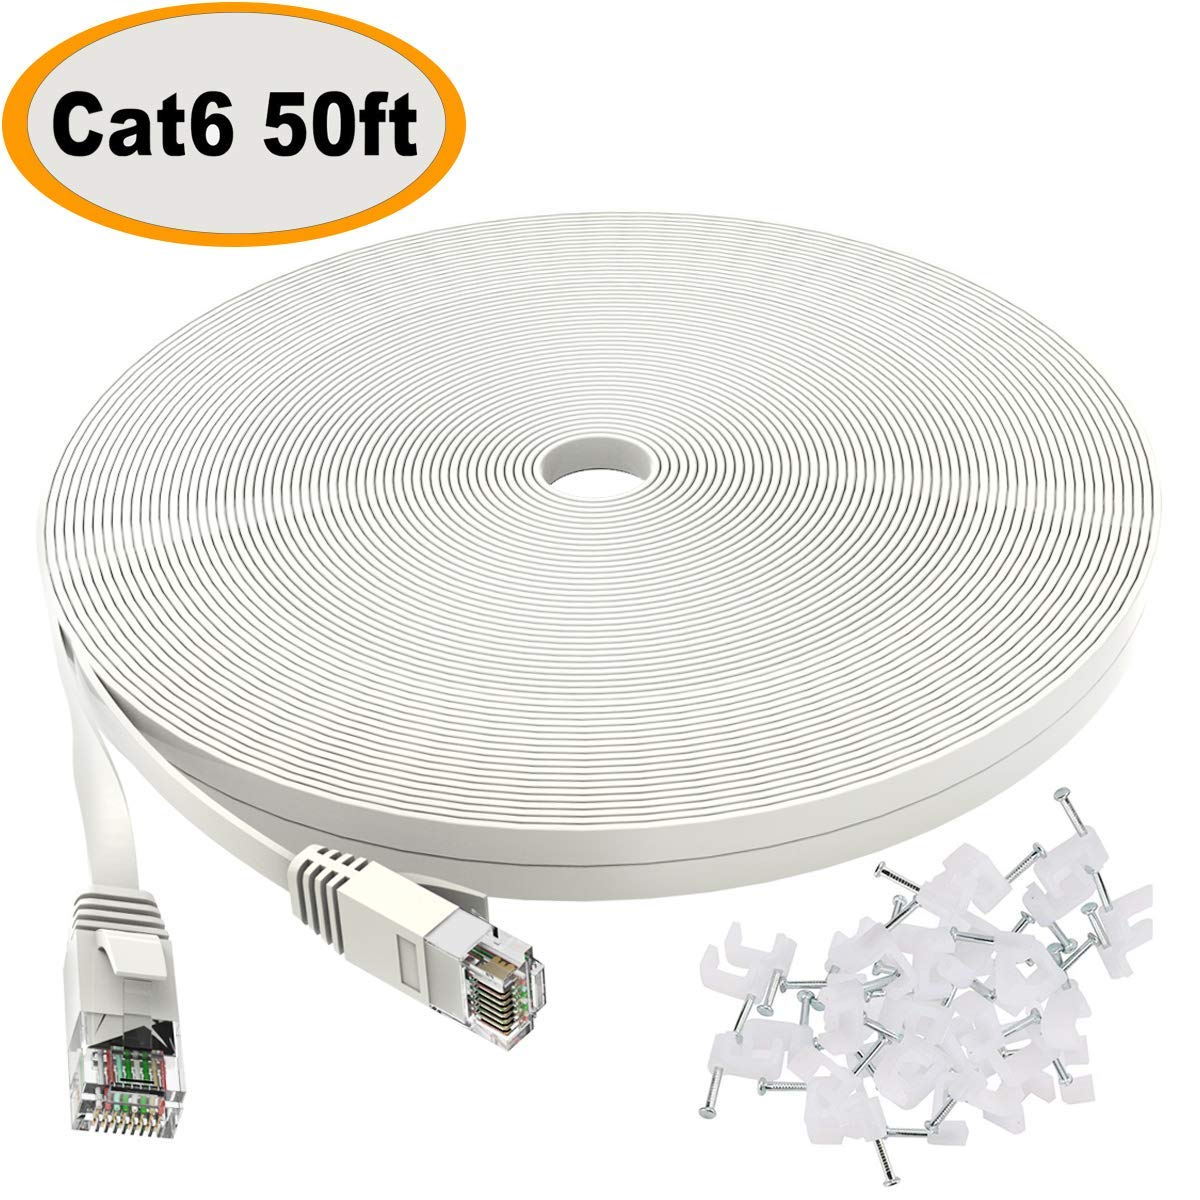 LAN Cable 50 ft: Cat 6 Ethernet Cable 50 ft White